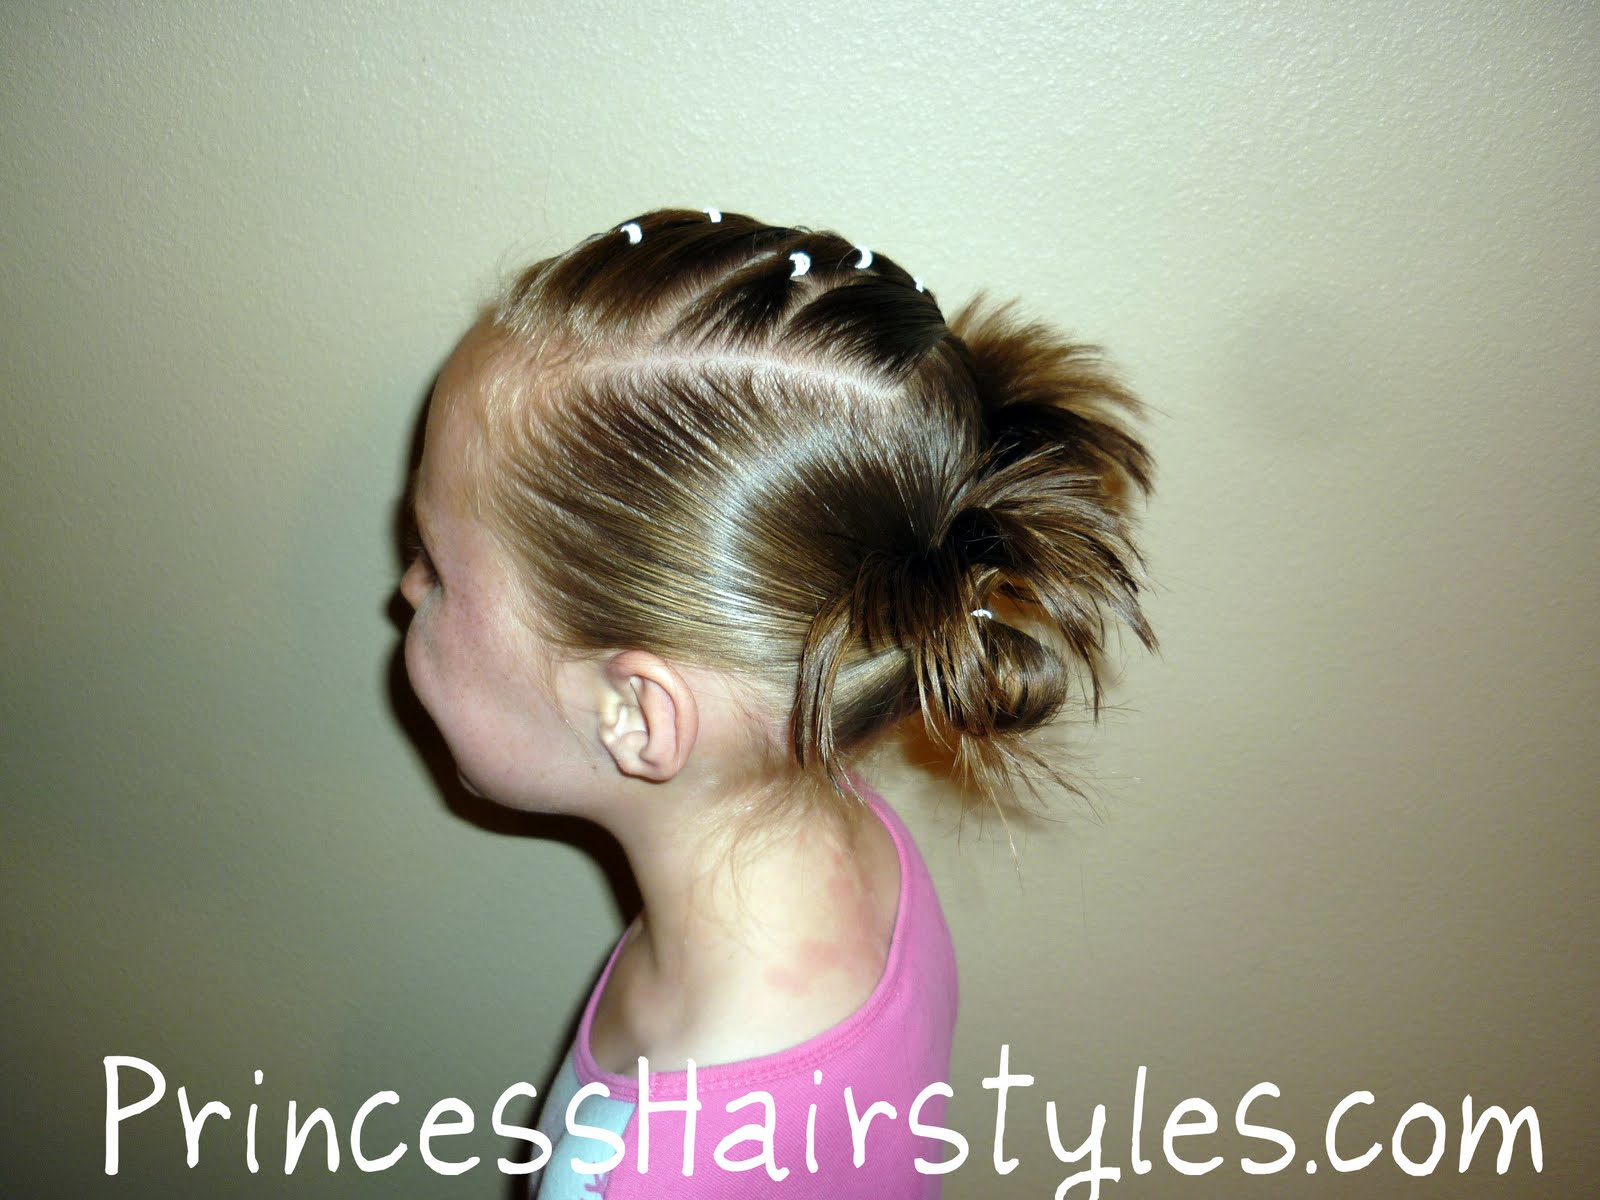 Hairstyles For Long Hair Gymnastics : ... Gymnastics Hairstyles Short Hair moreover Cute Gymnastics Hairstyles